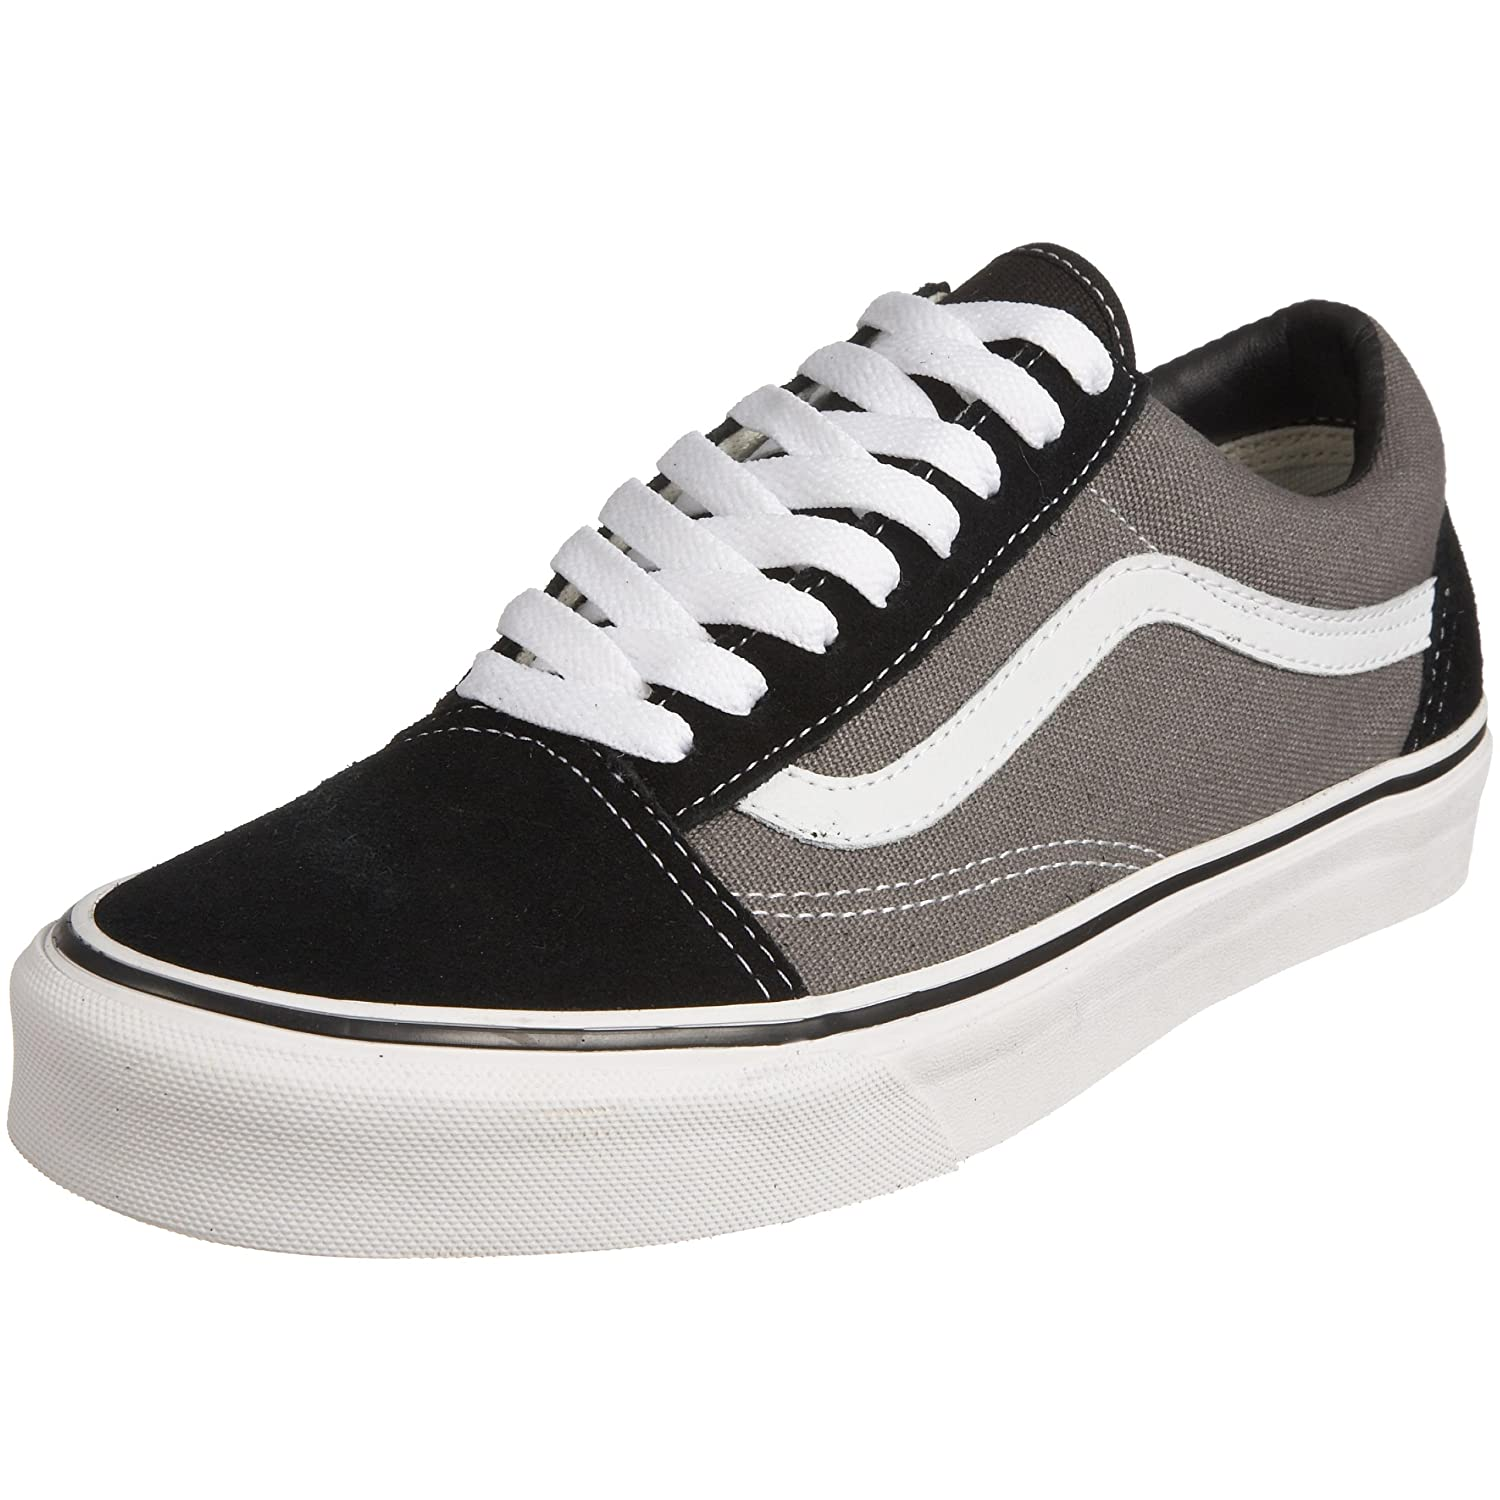 Vans Unisex Old Skool Classic Skate Shoes B003S0R3FO Men's 9, Women's 10.5 Medium|Black/Pewter